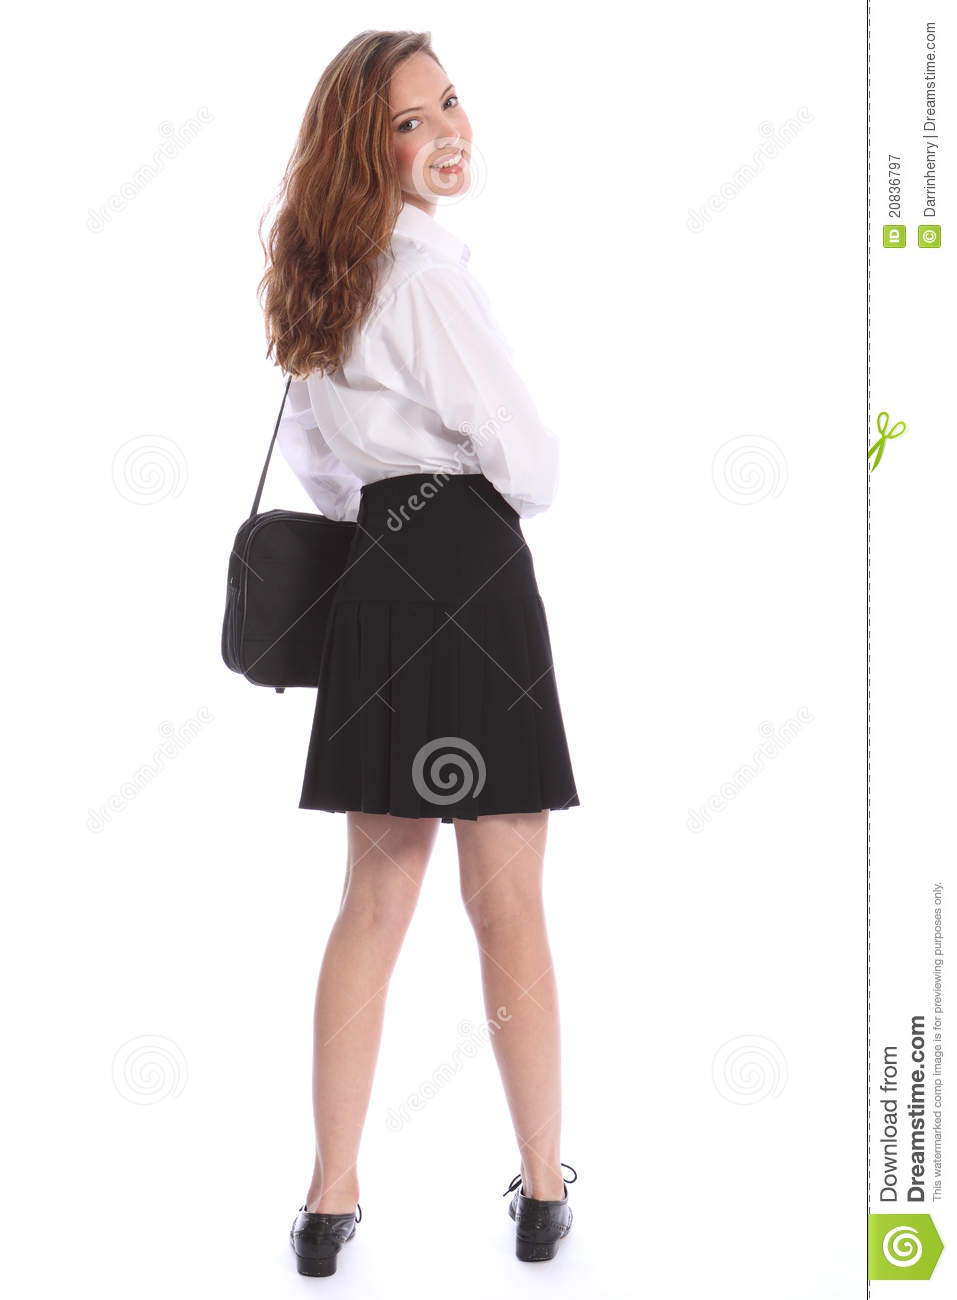 Cute Smile Teenage Student Girl In School Uniform Royalty Free Stock ... Happy High School Student Clipart